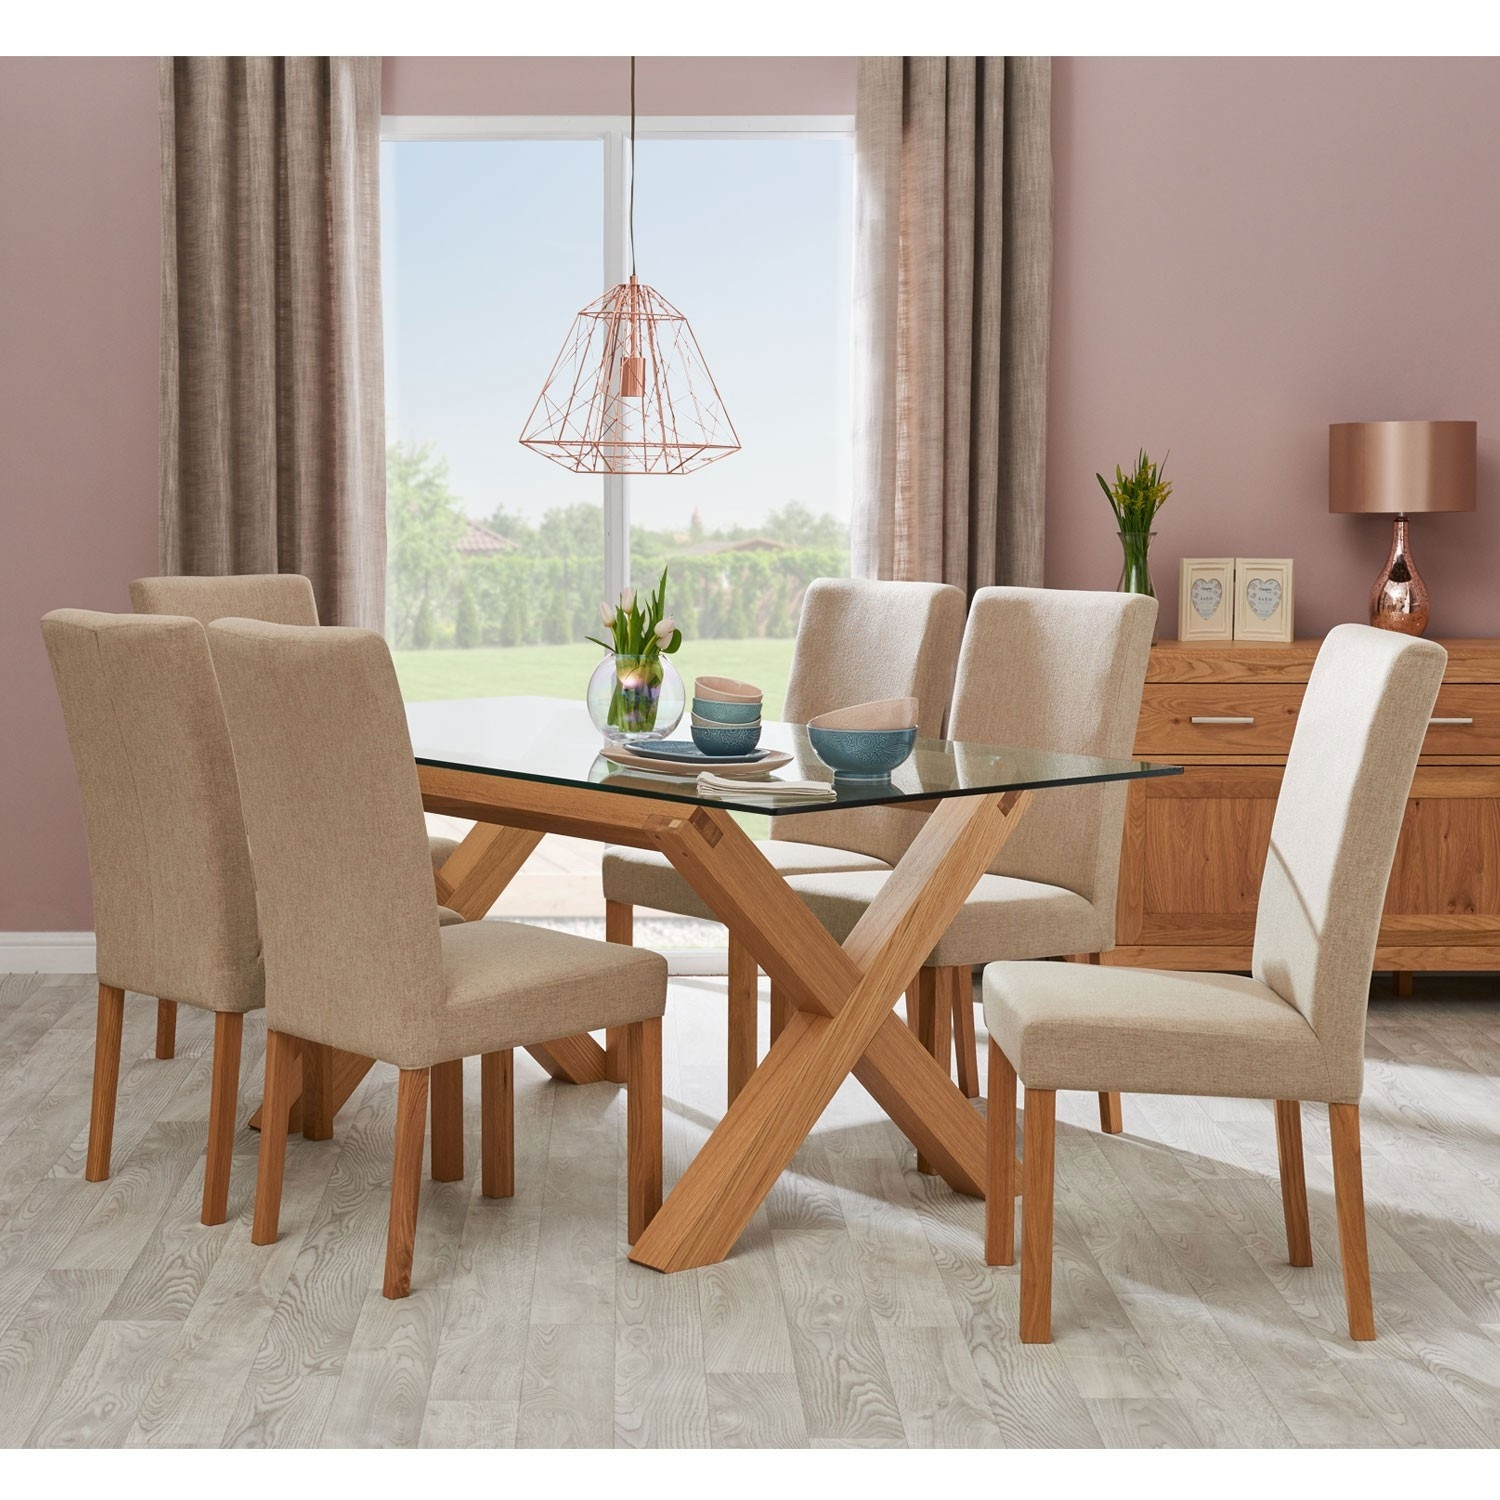 casa toledo glass table 6 upholstered chairs dining set